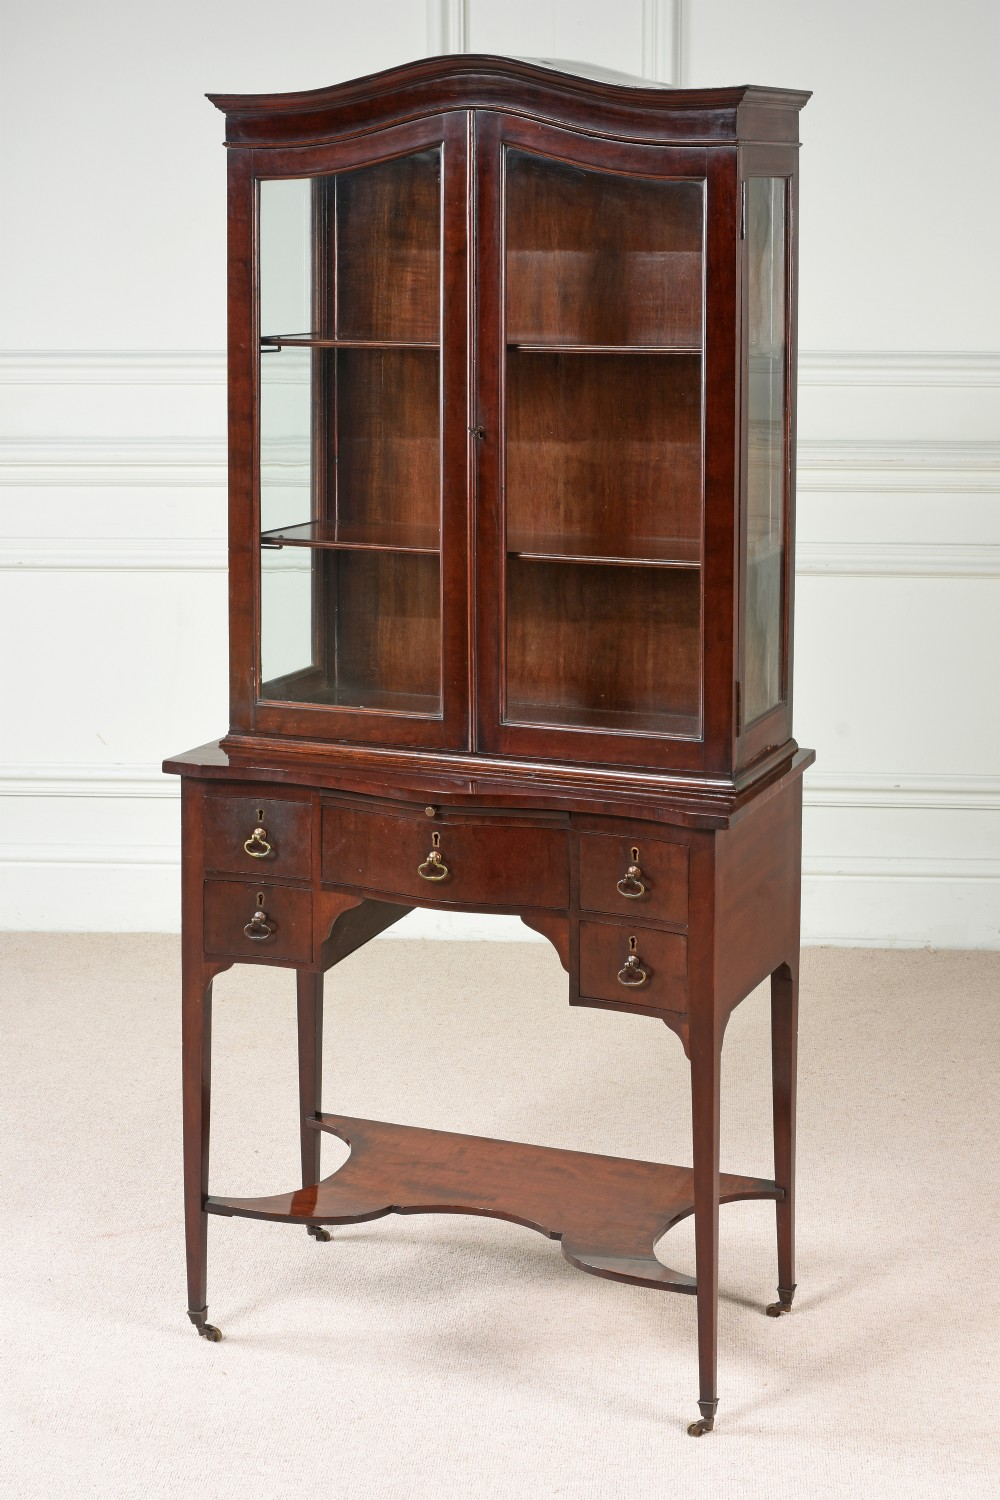 a beautiful small glazed cabinet on stand